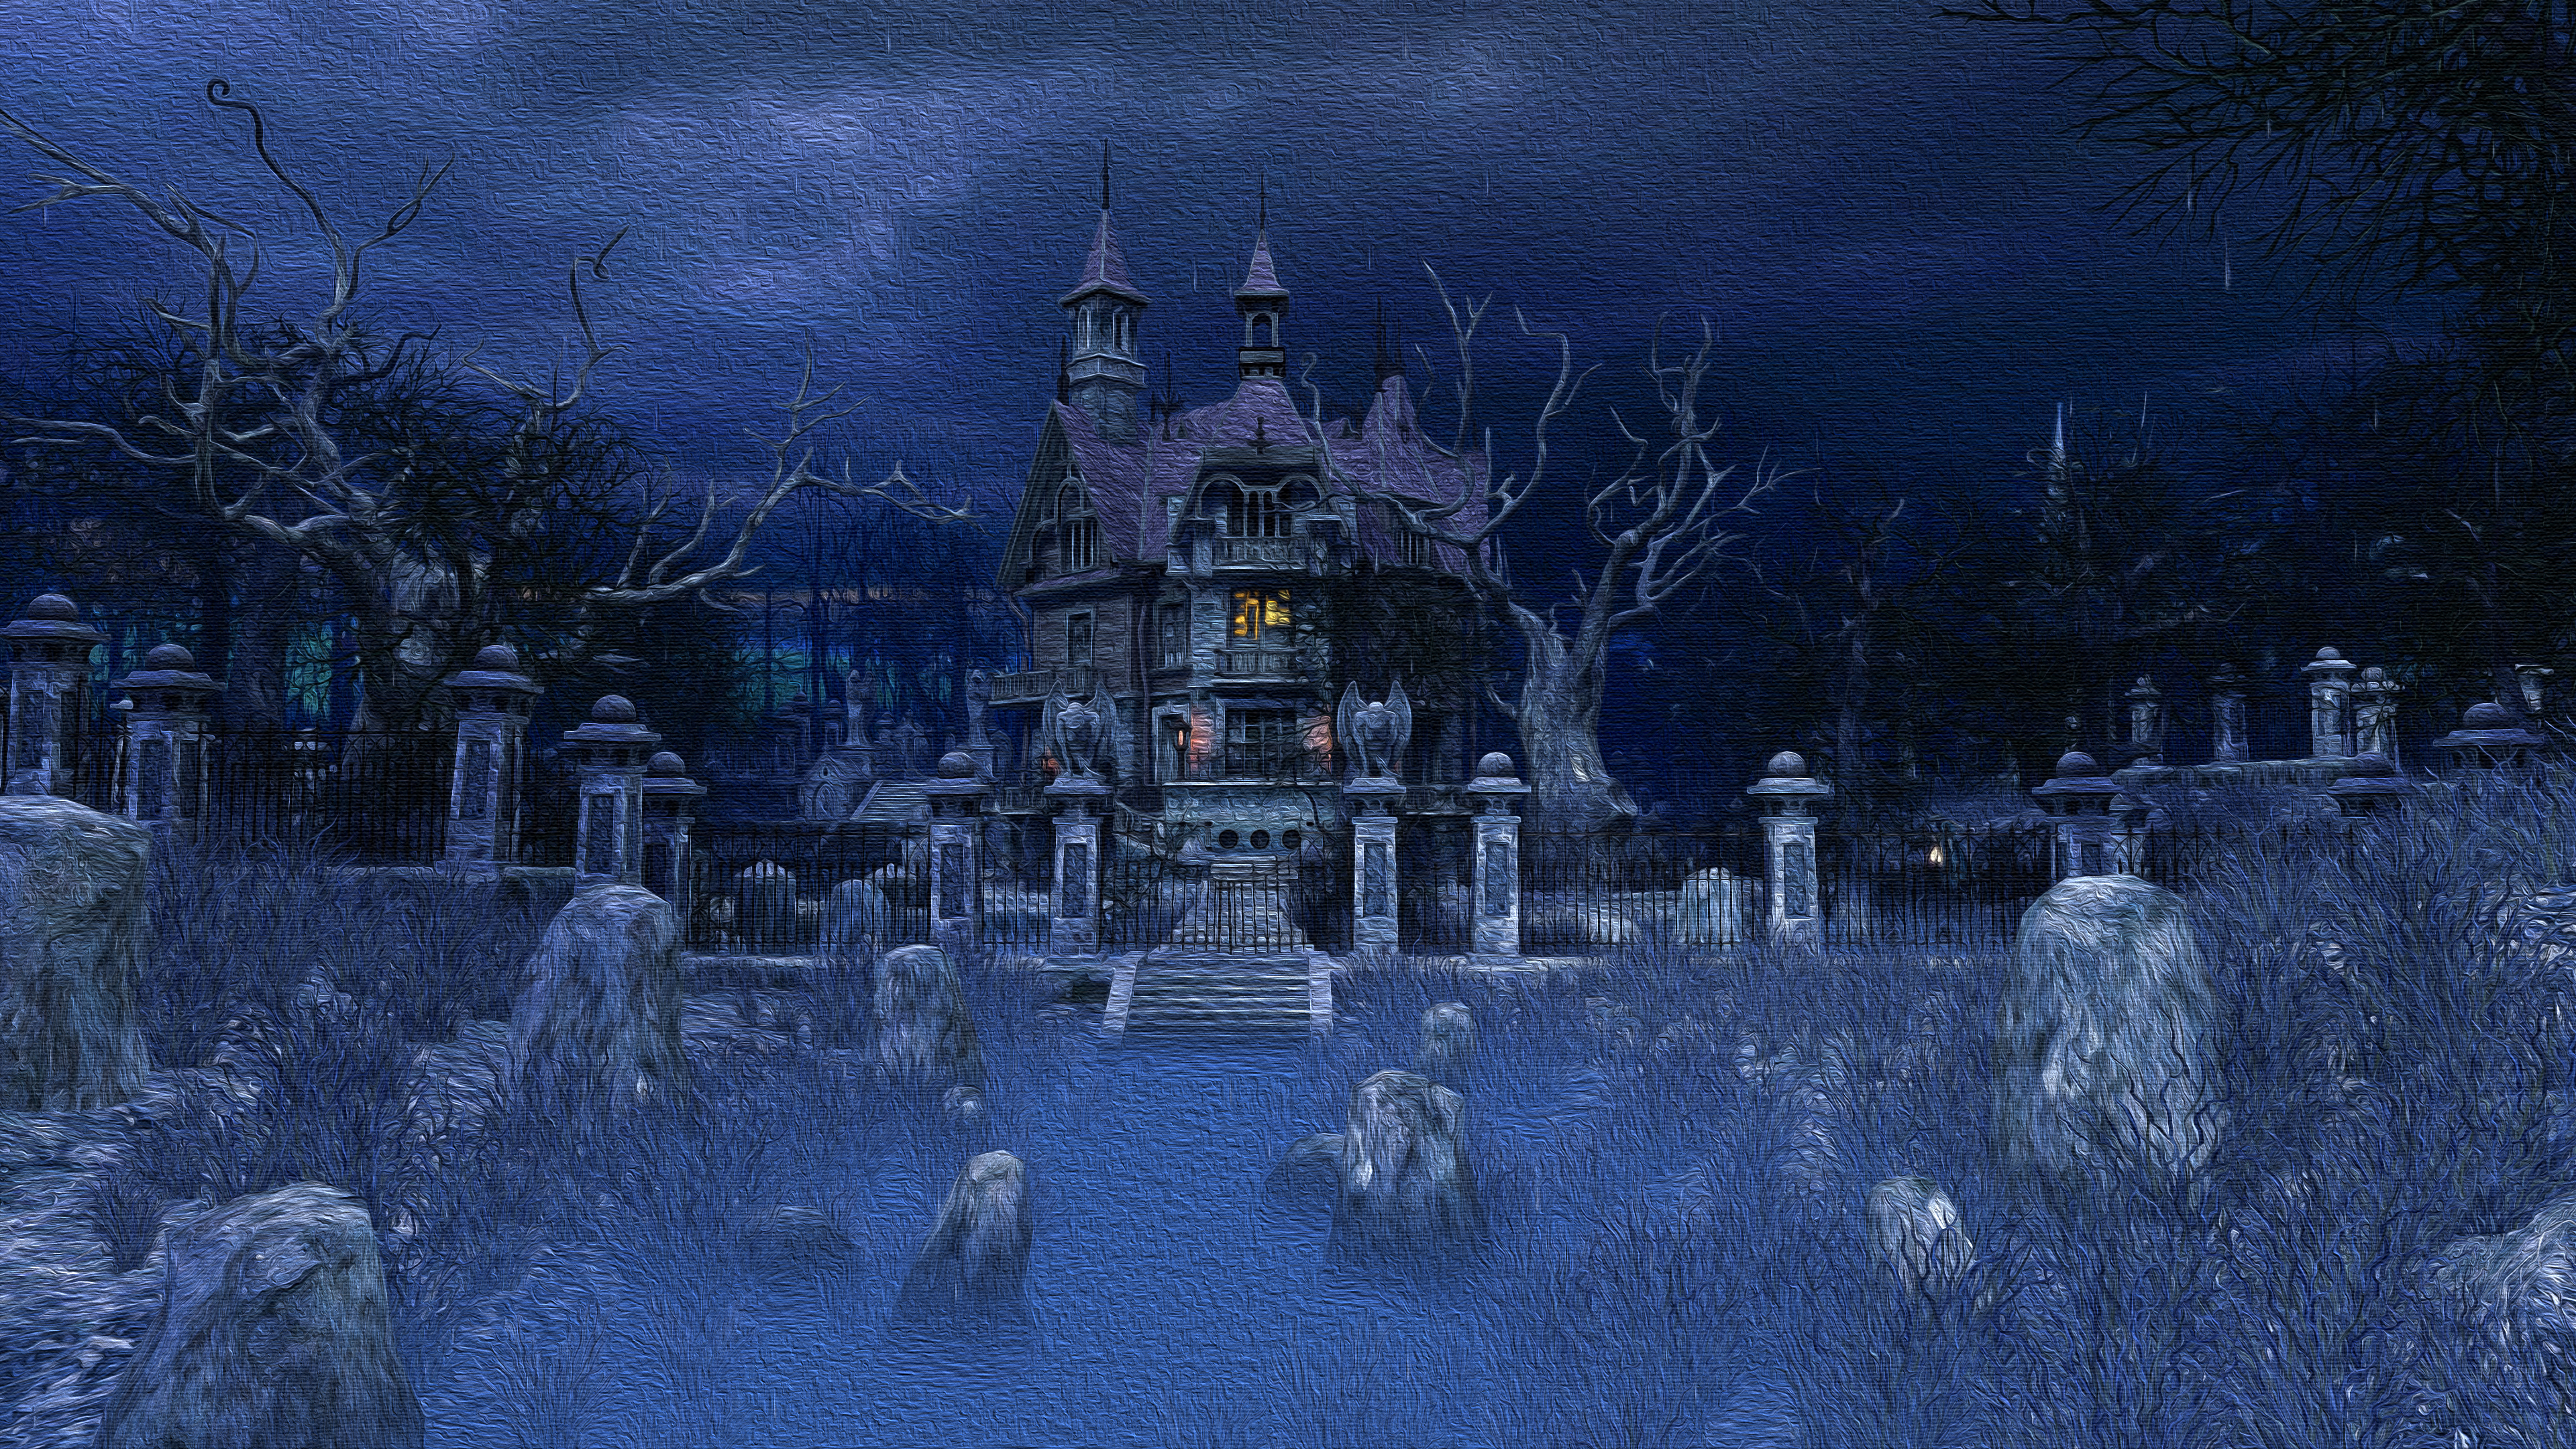 A picture of a haunted house